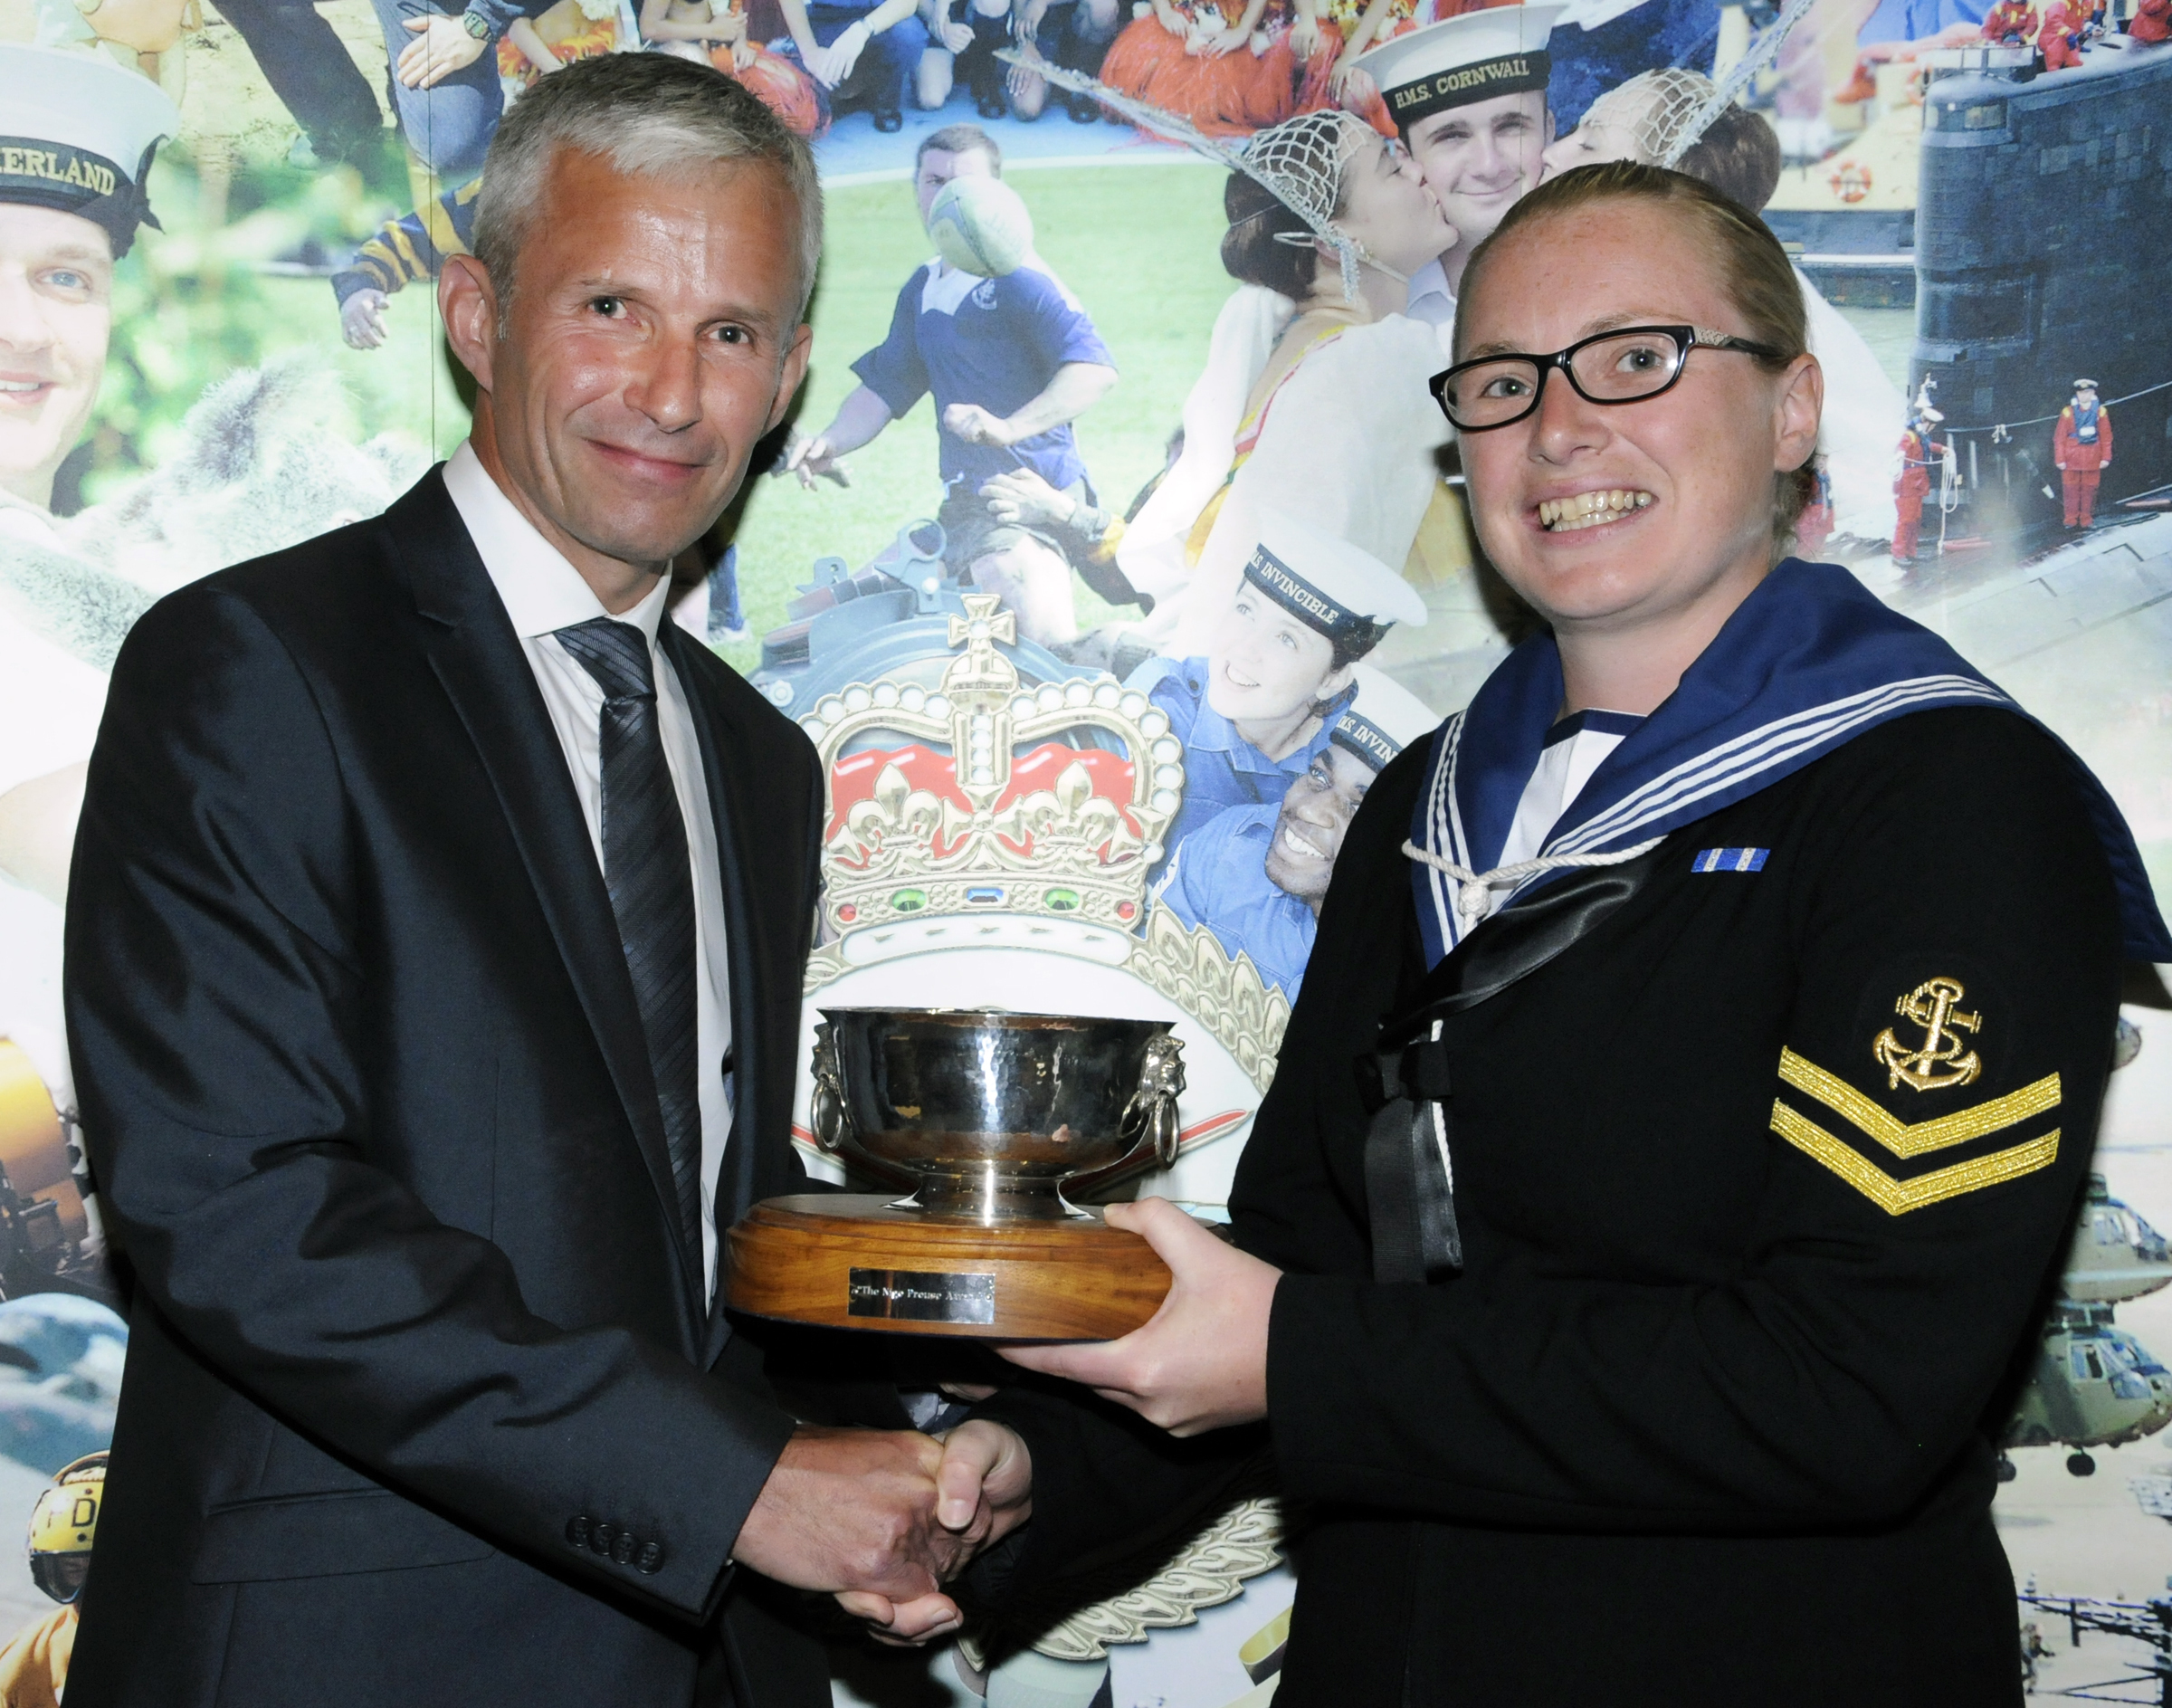 Lynsey Hay (right) receiving the The Nigel Prouse Award from Ritchie Killick.